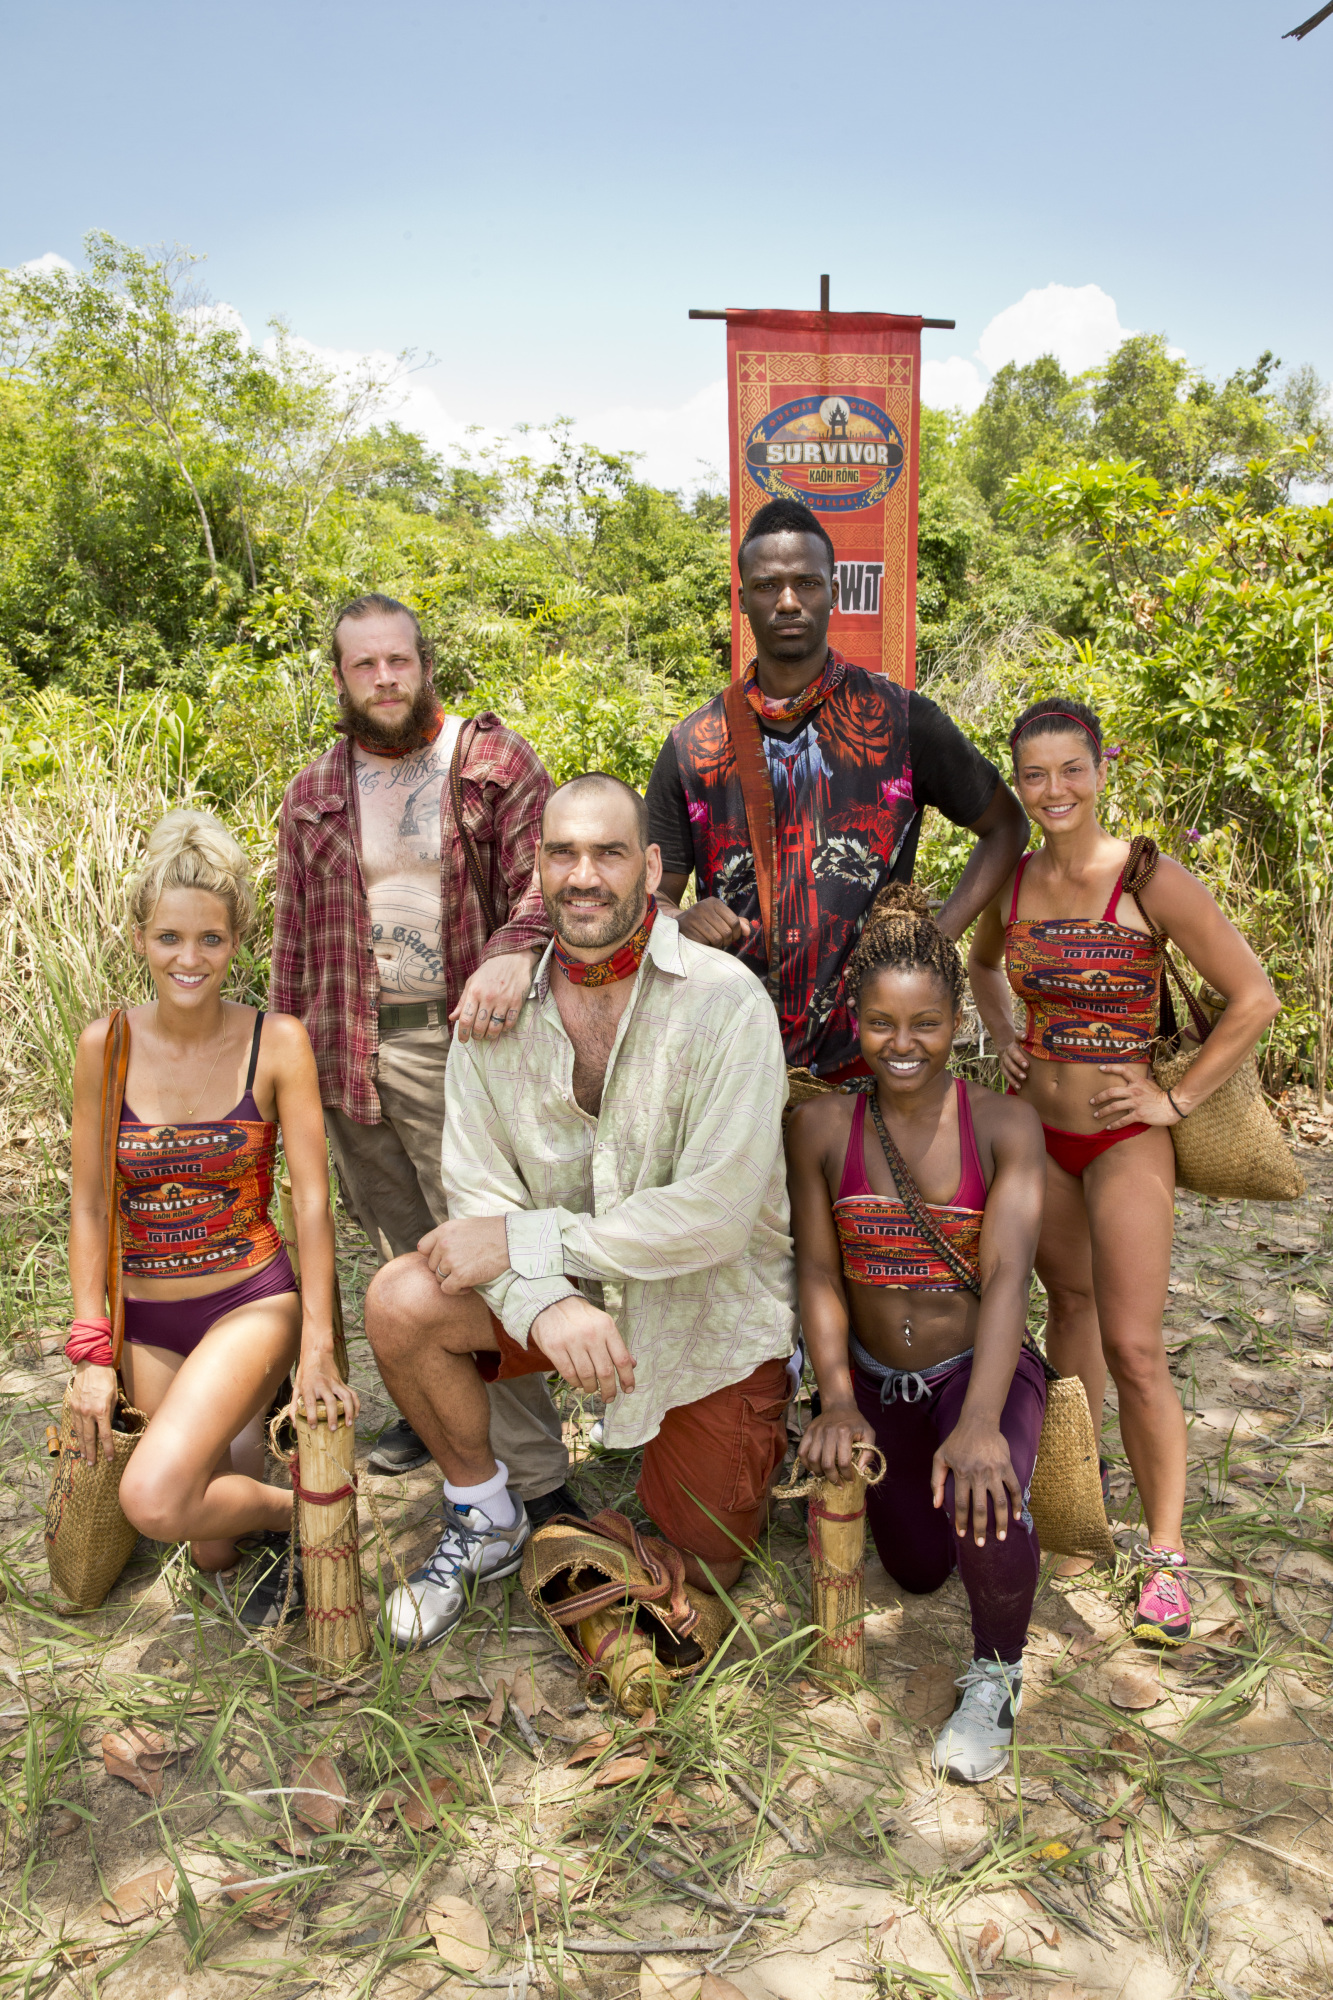 Brawn tribe poses for group photo on Survivor: Kaoh Rong